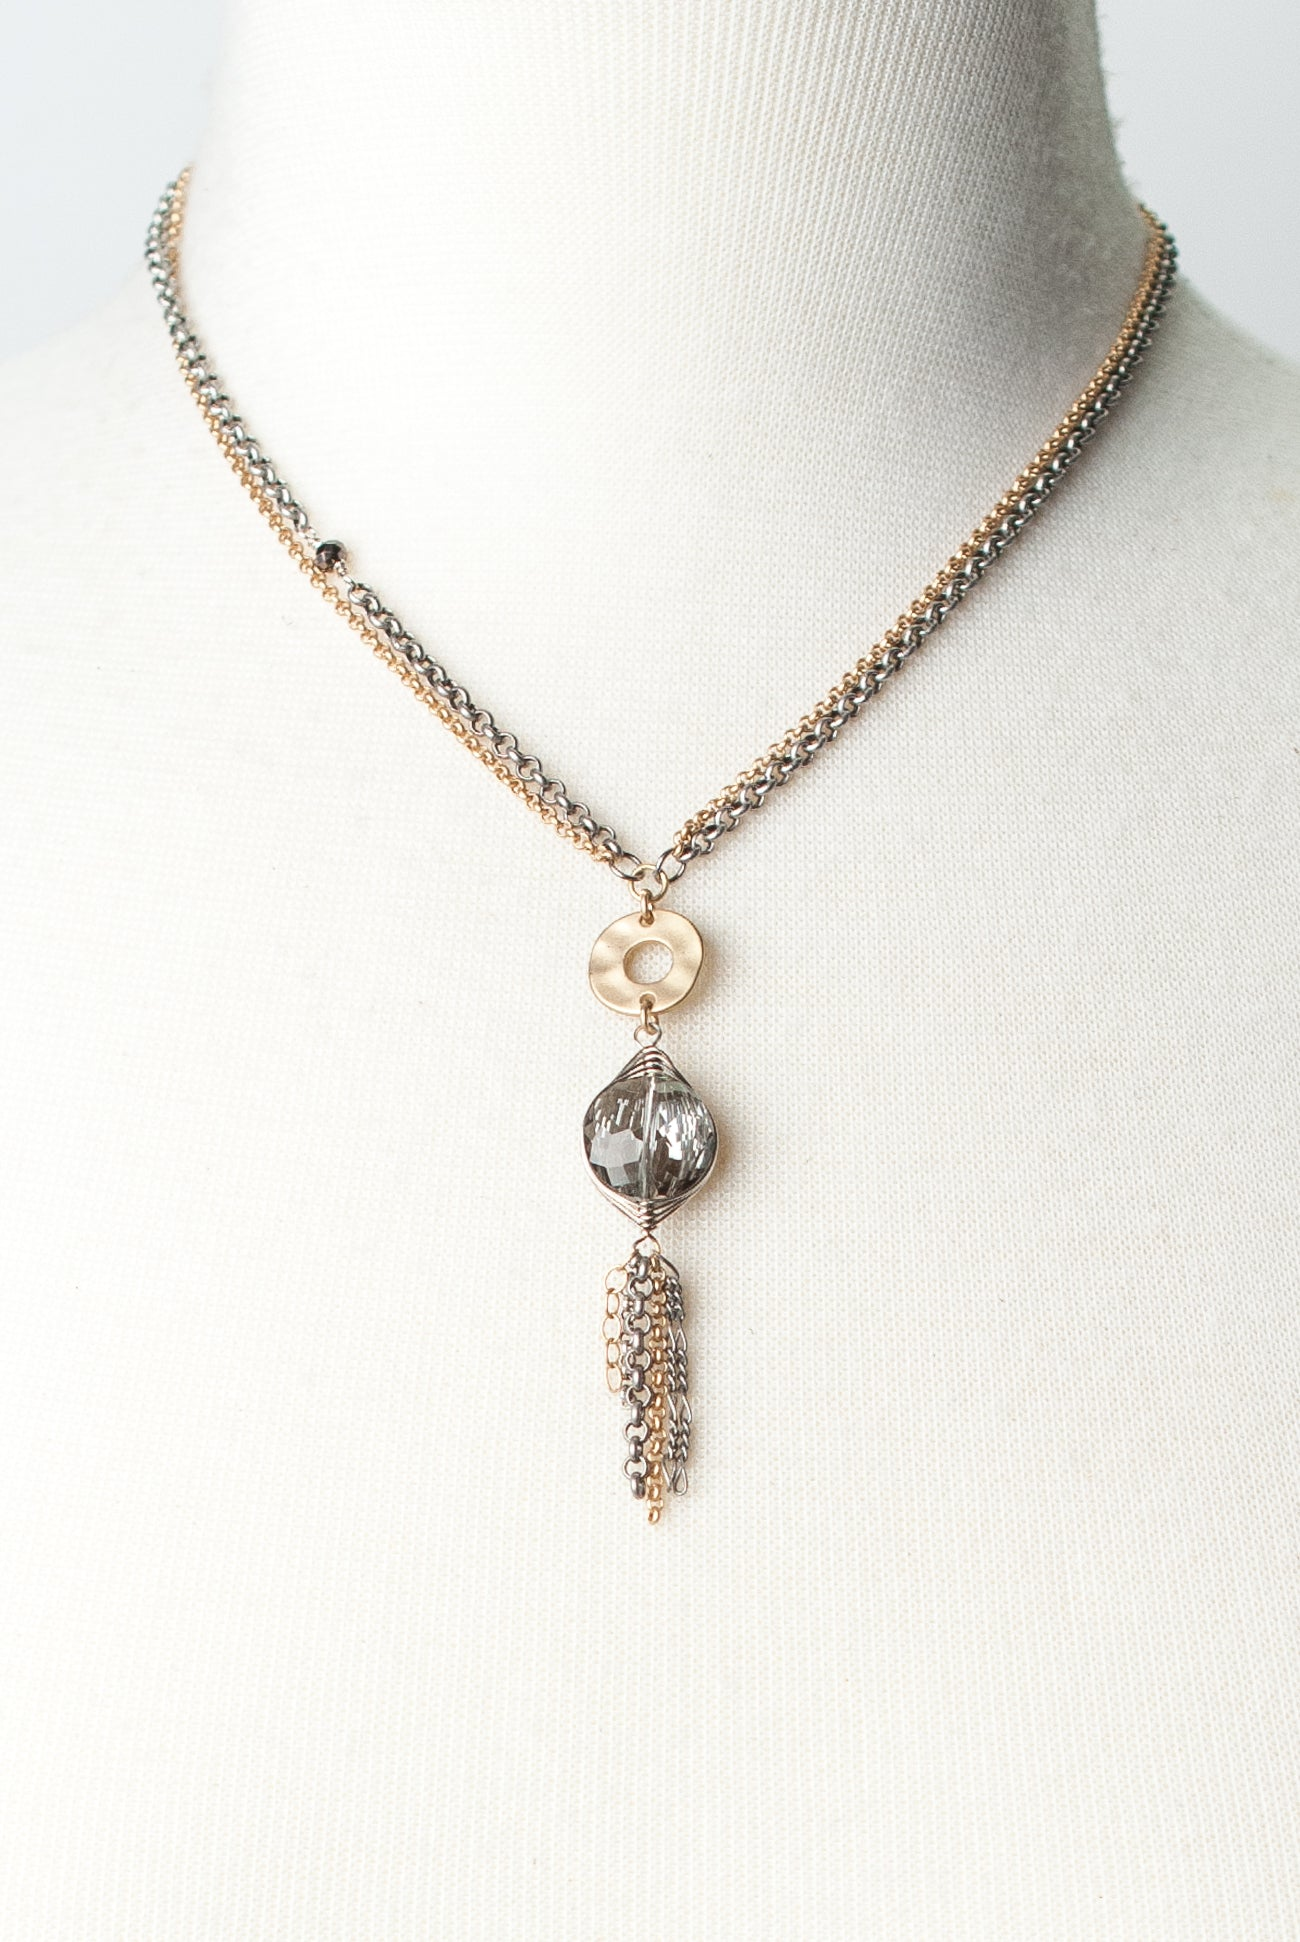 "Silver & Gold 16-18"" Crystal Tassel Pendant Necklace"